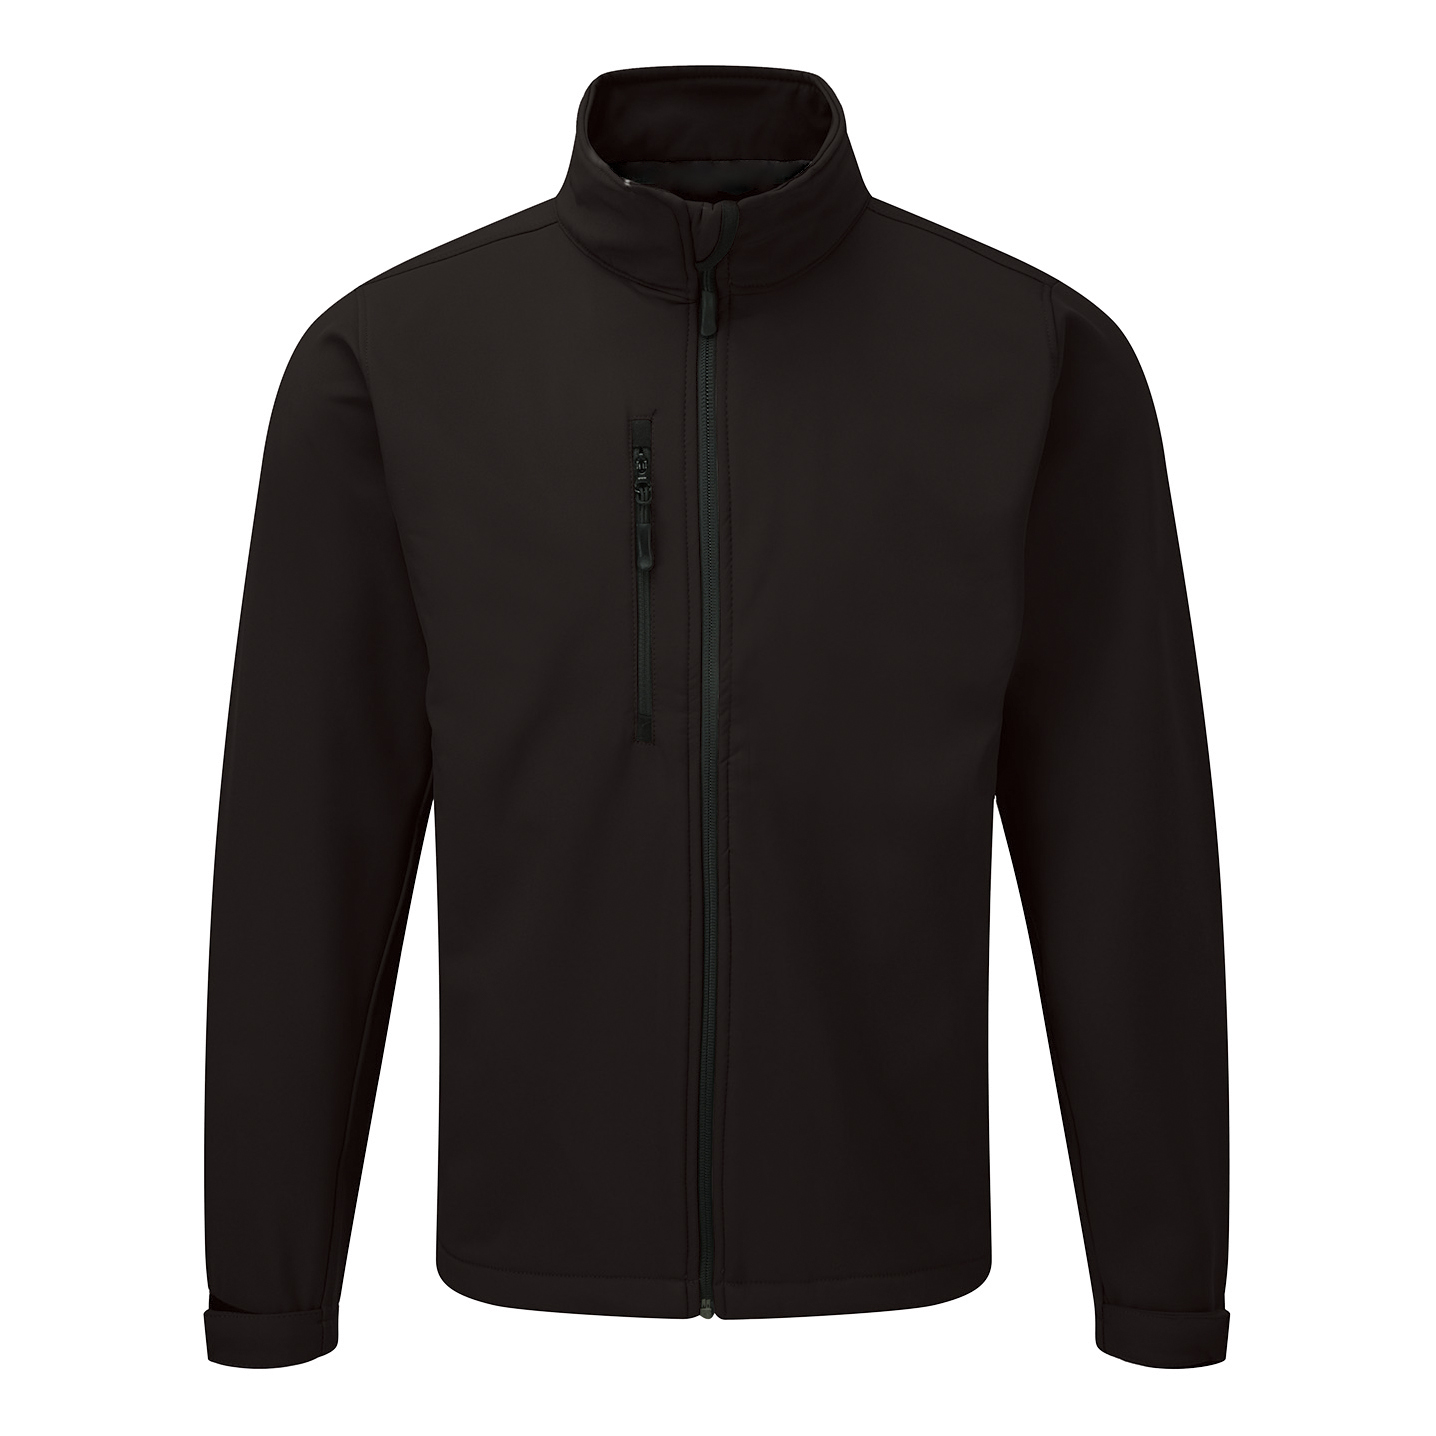 Business Soft Shell Water Resistant Breathable Jacket 320gsm Size 5XL Black